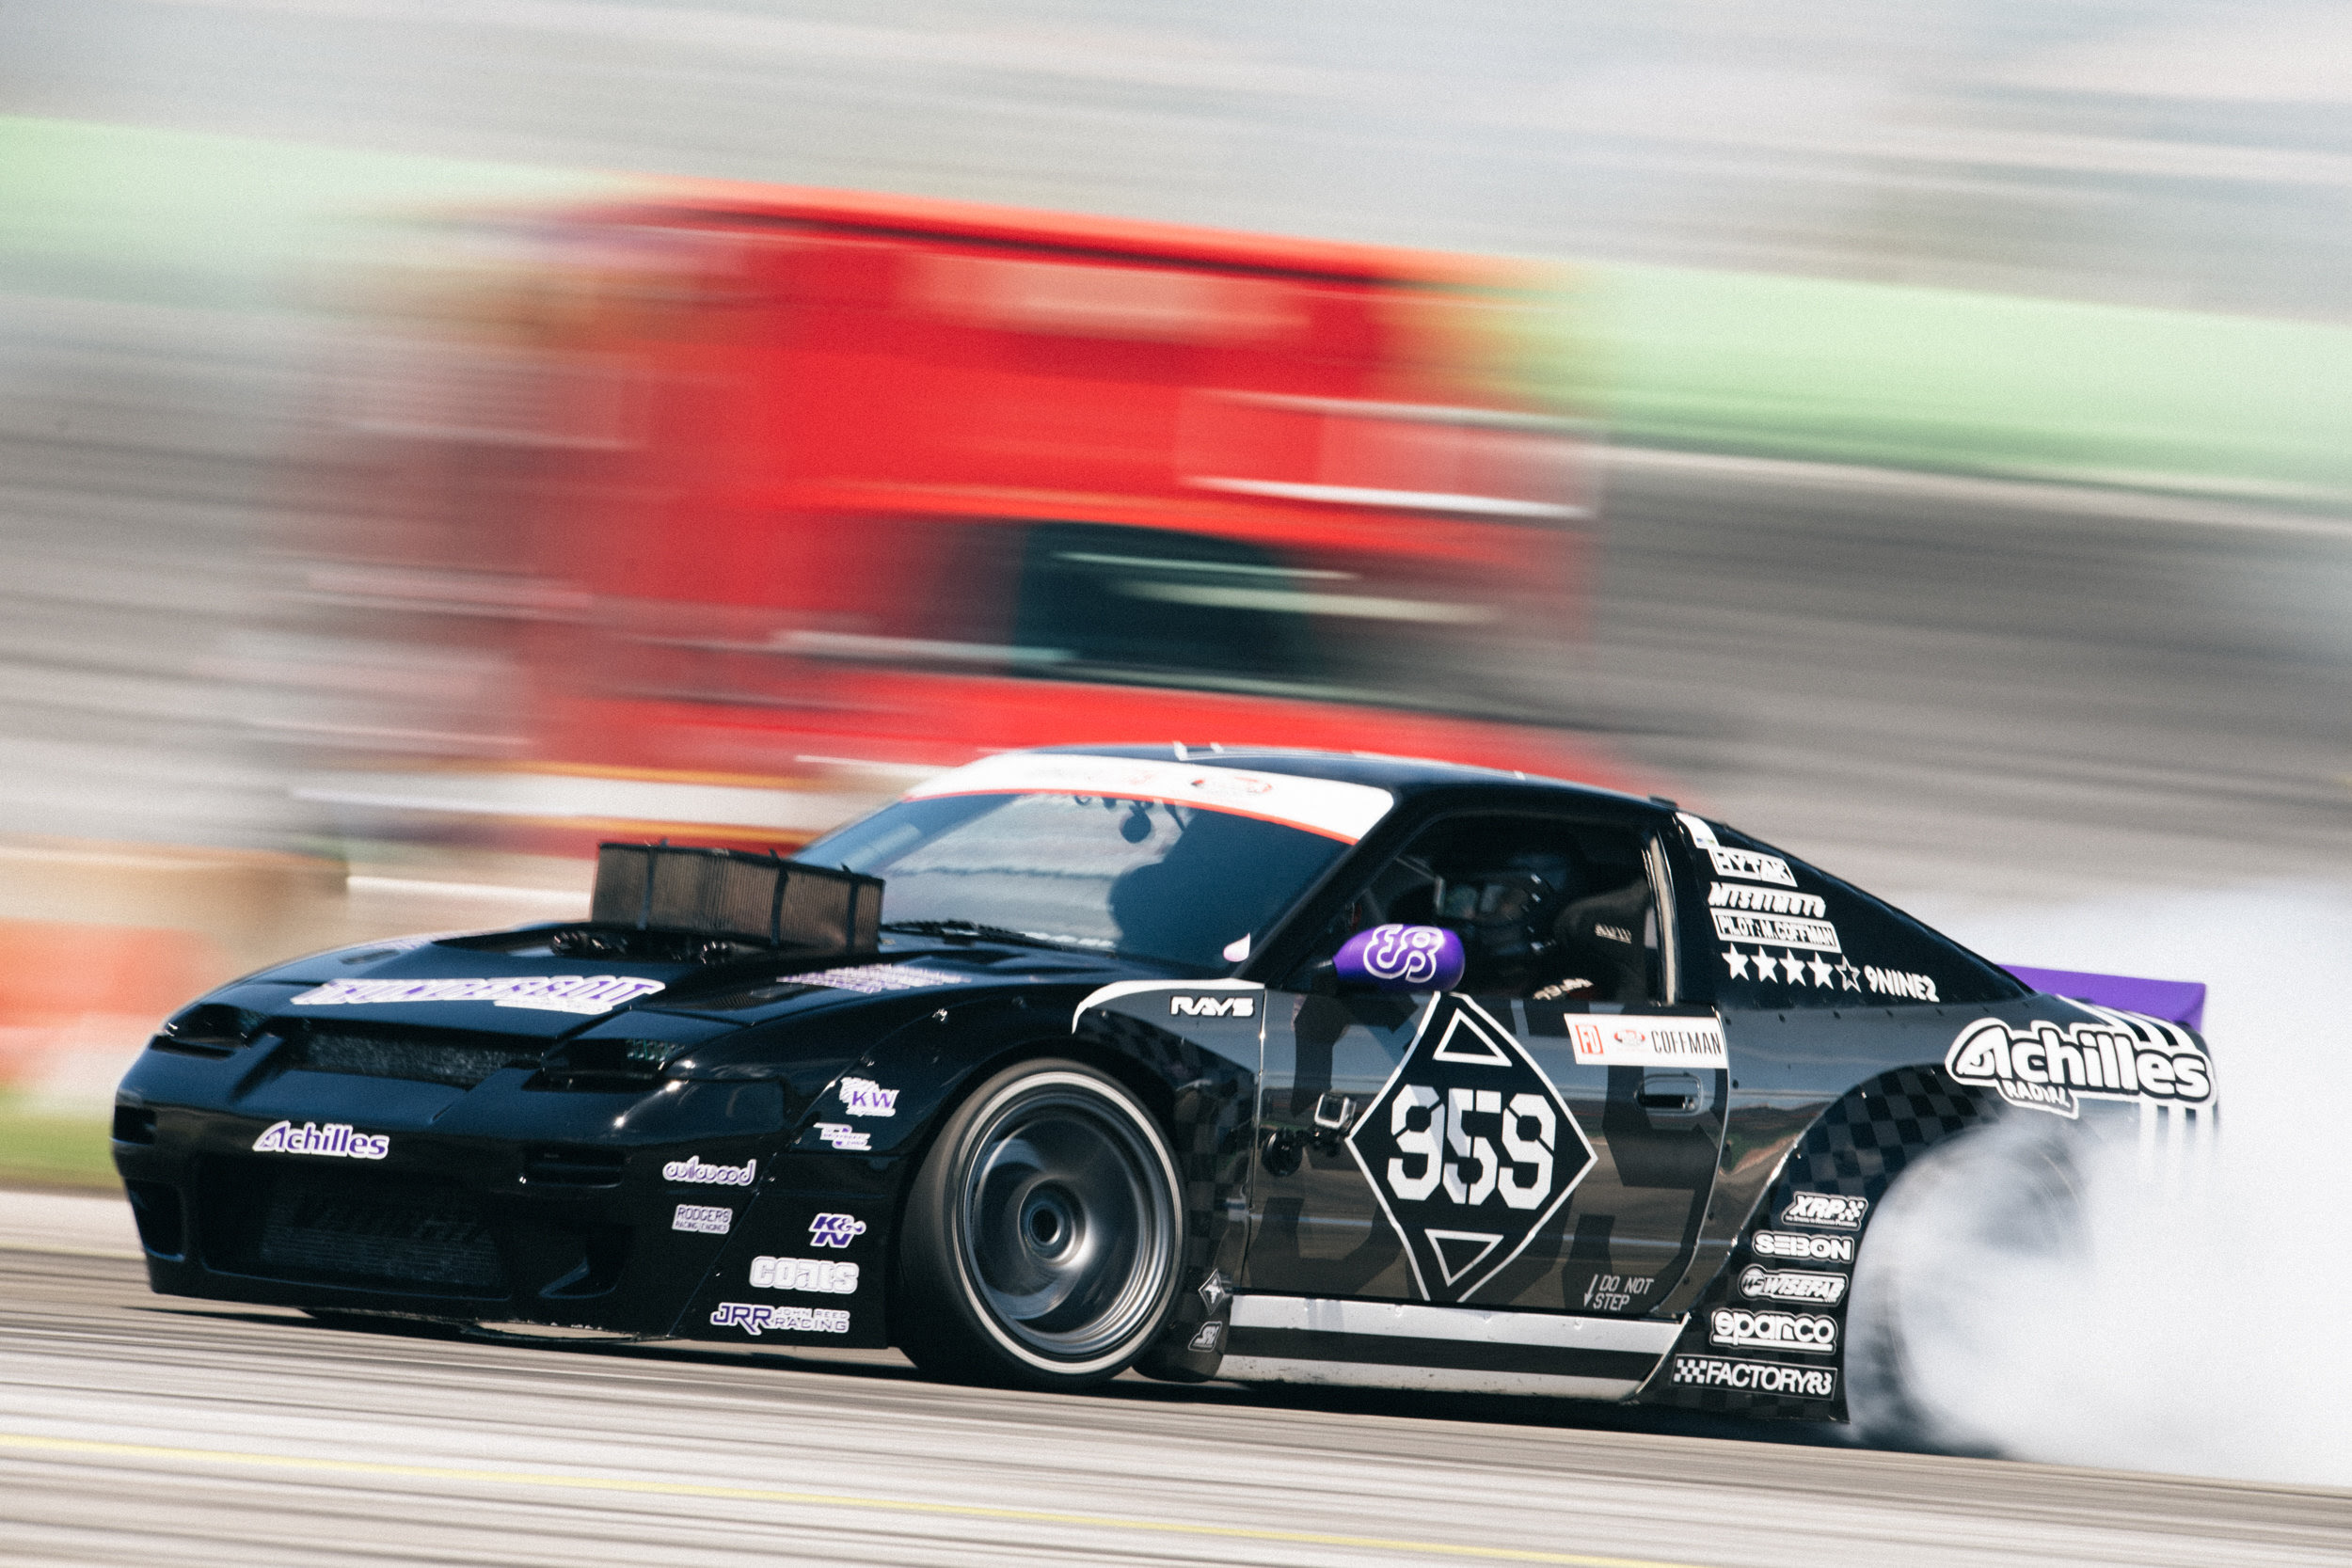 Last weekend, the Coffman Racing team headed to Orlando, FL for Round Two of the Formula Drift Championship.The weather in Orlando was surprisingly nice this year as it never rained or got too hot and humid.